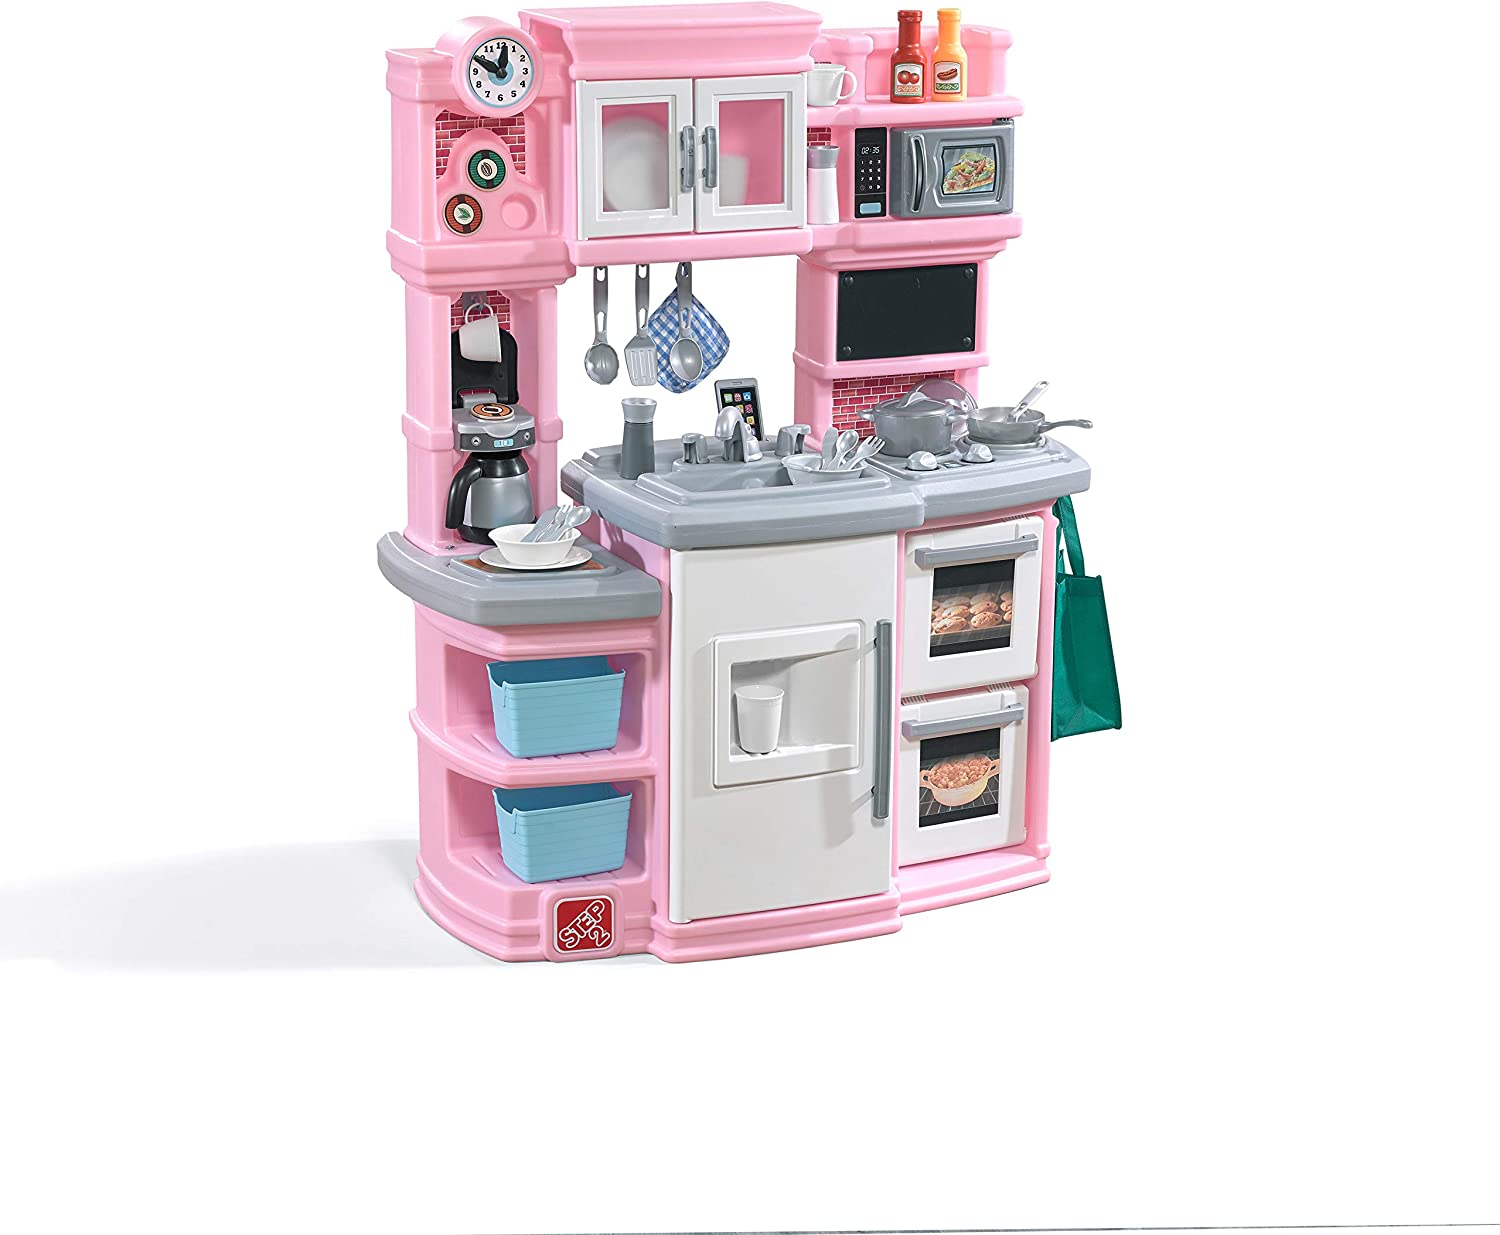 Amazon Com Step2 784200 Great Gourmet Kitchen Durable Kids Kitchen Playset With Lights Sounds Pink Plastic Play Kitchen 16 75 X 39 X 46 Inches Toys Games